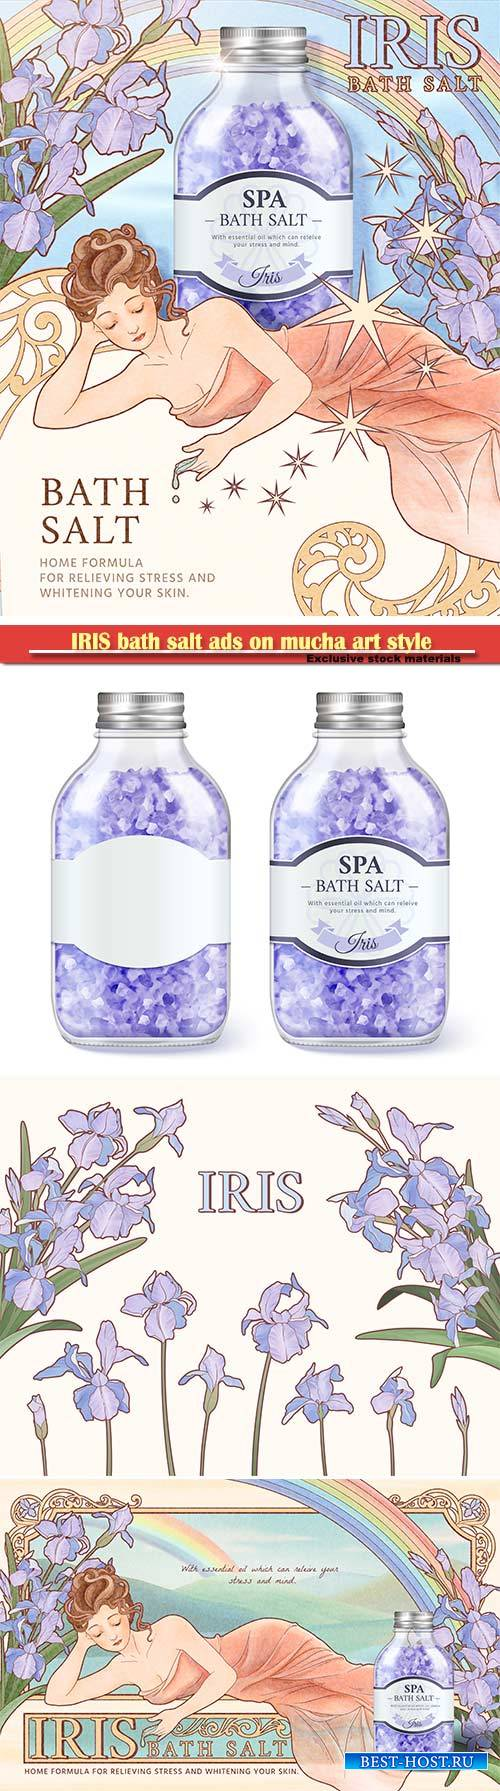 IRIS bath salt ads on mucha art style background, woman side lying with purple flowers